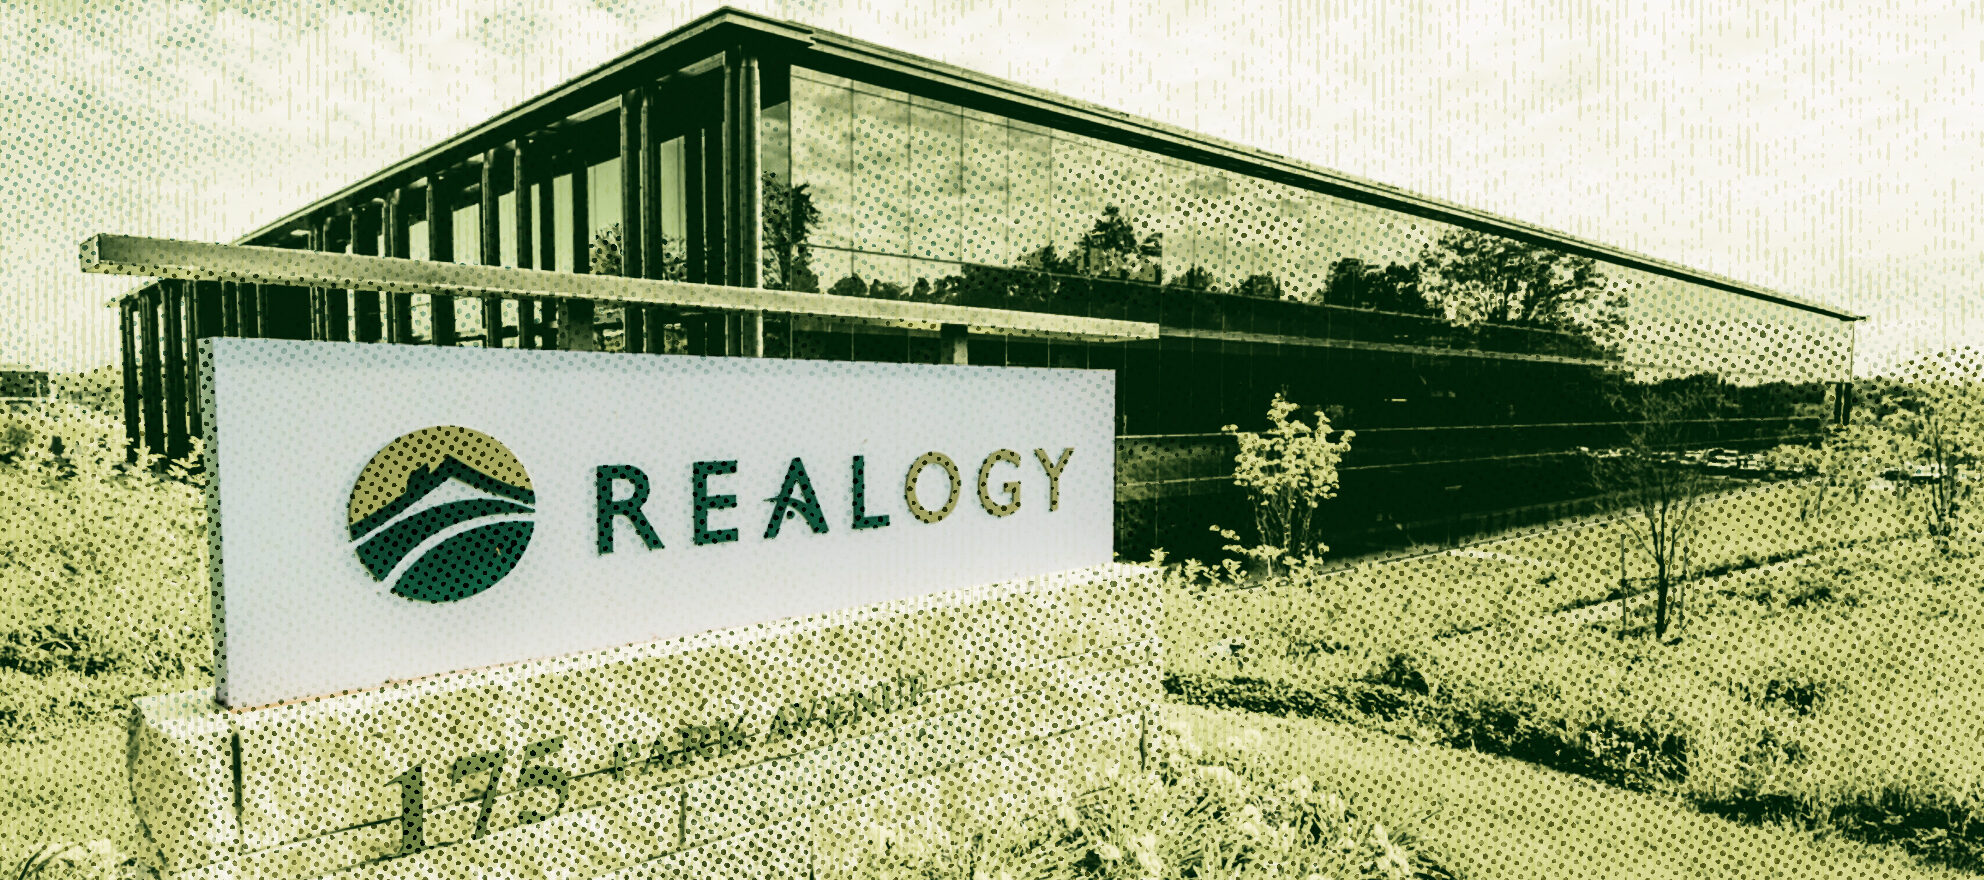 Realogy makes major structural changes amid market stumble